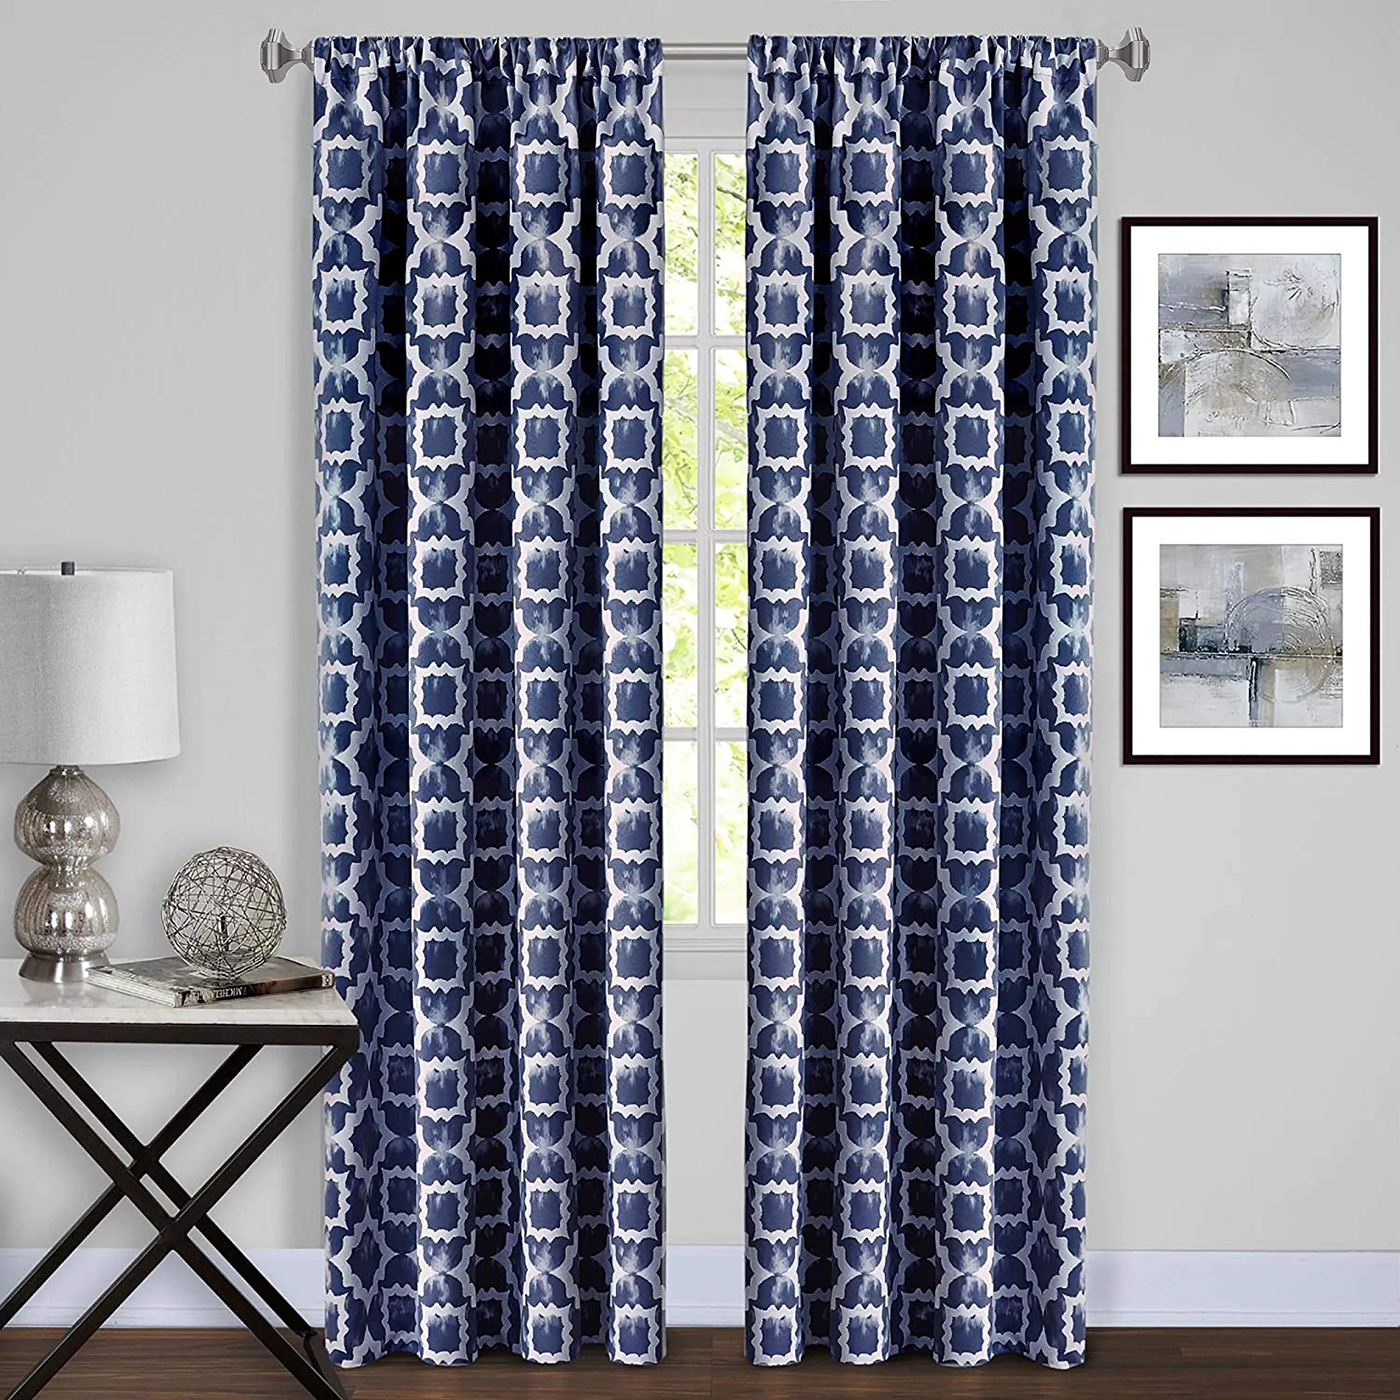 Curtain-Rod-Decorative-Telescopic-Cafe-Window-Drapery-Rods-Set-w-Modern-Finials thumbnail 13